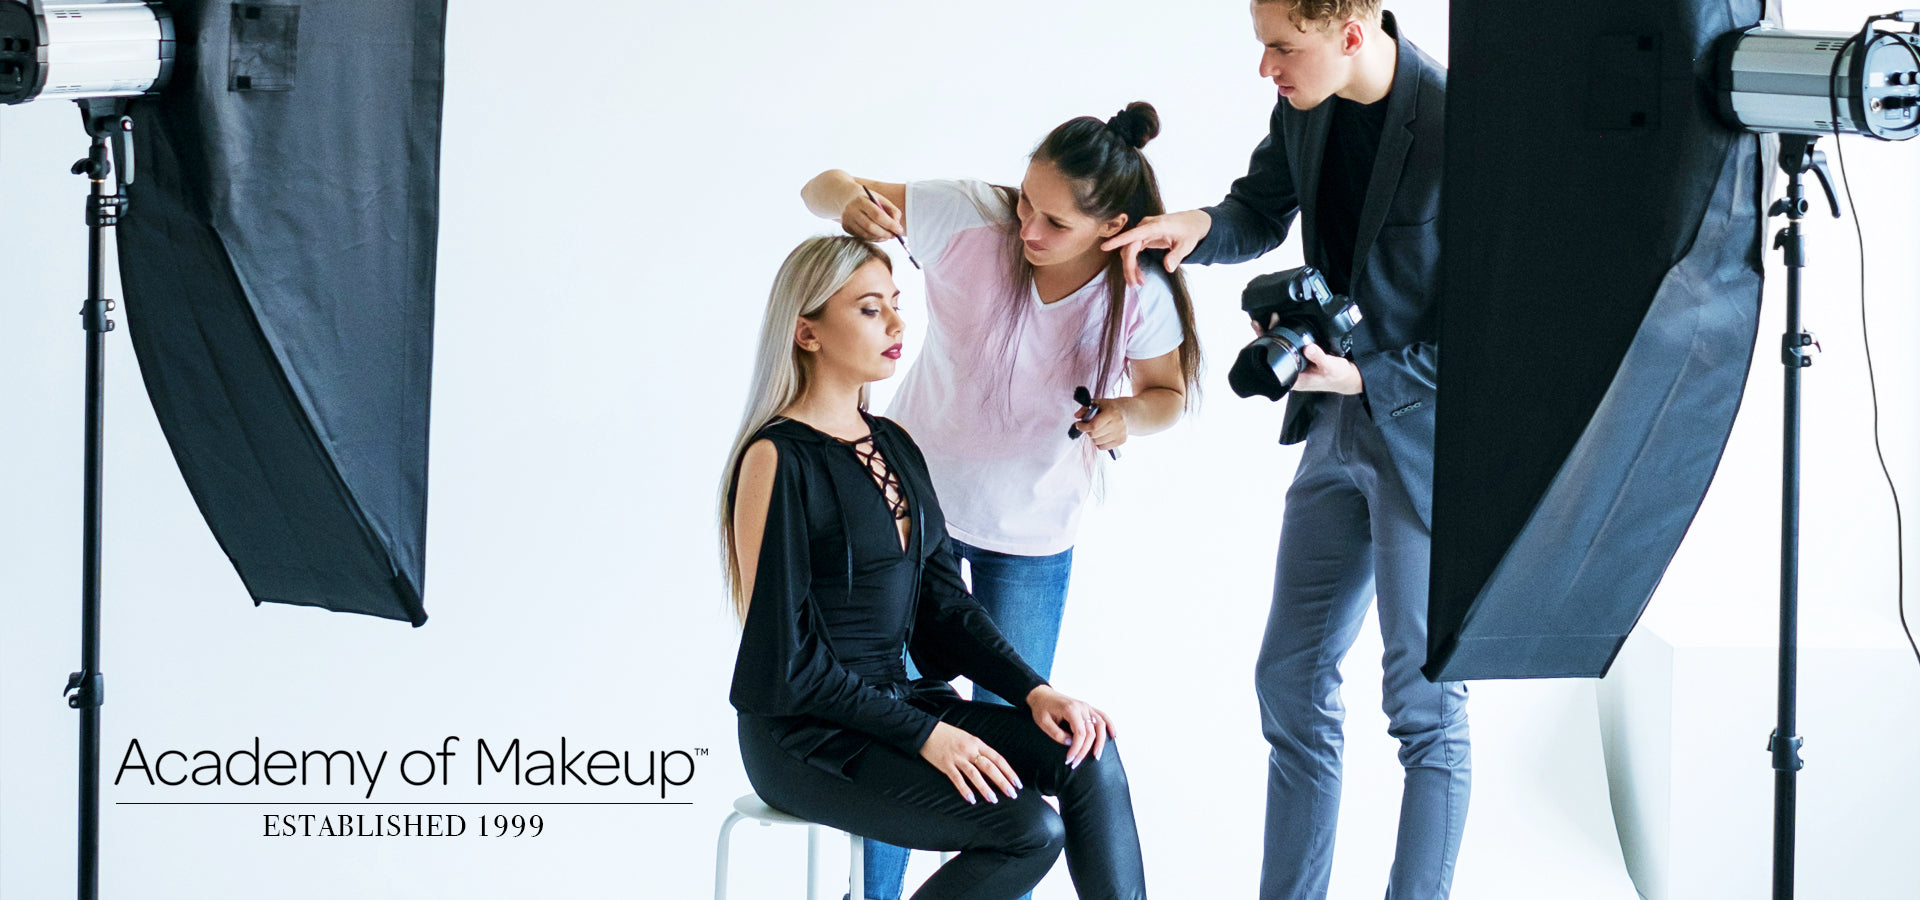 Beauty Fashion Job Training: Makeup Training Australia, The Academy Of Makeup Is The